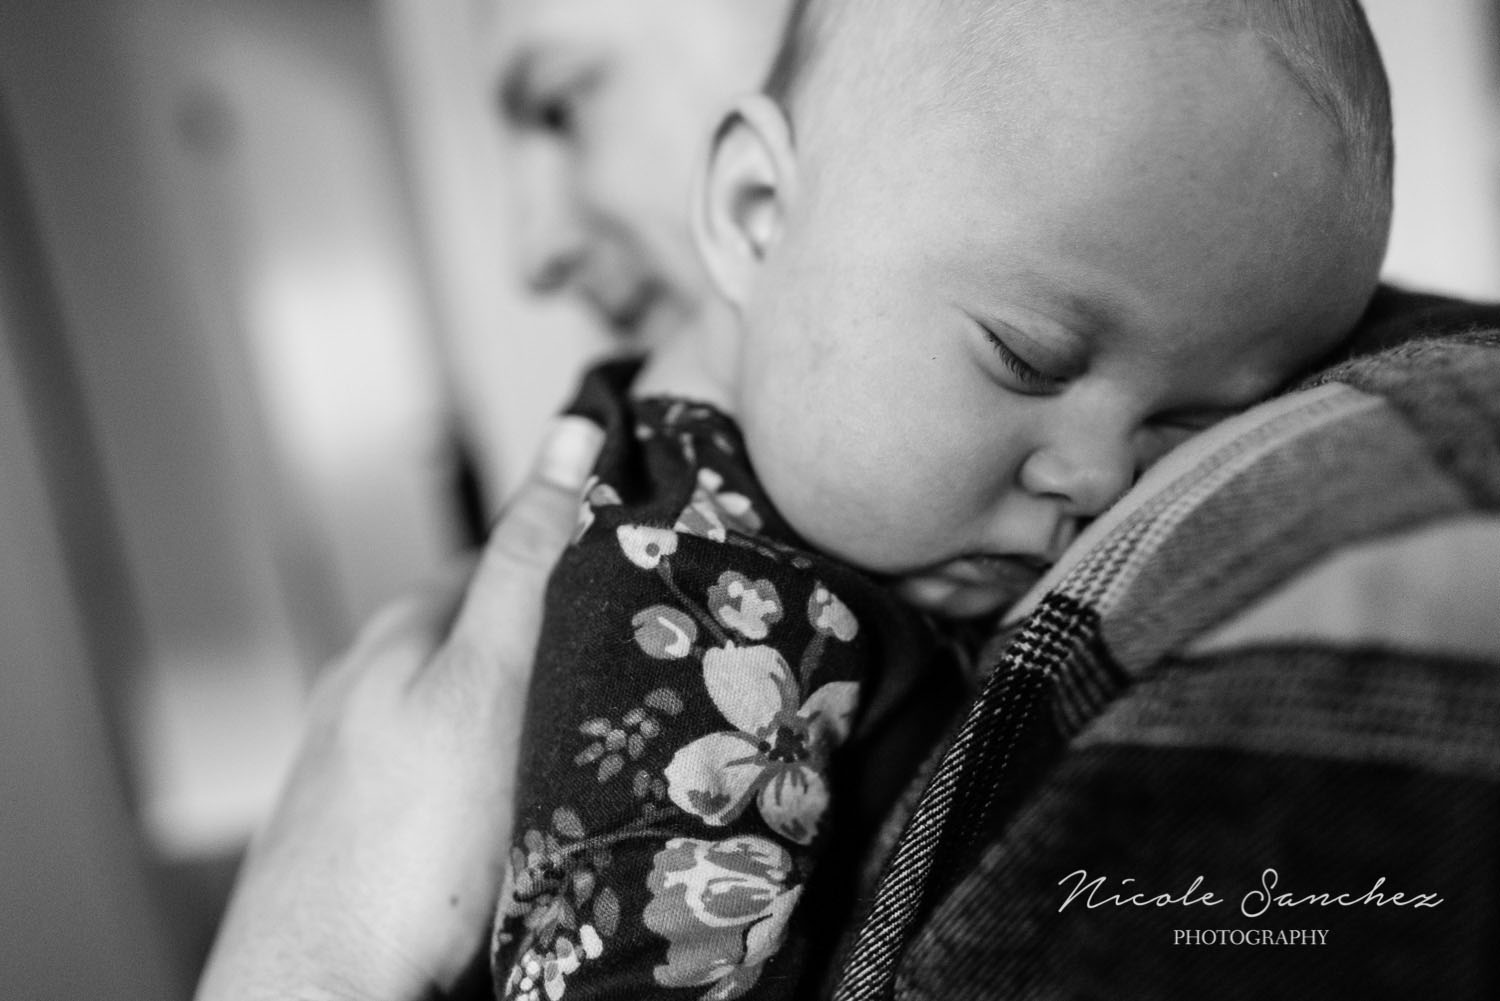 In-home-family-photography-session-nicole-sanchez-northern-virginia-documentary-photographer-12.jpg